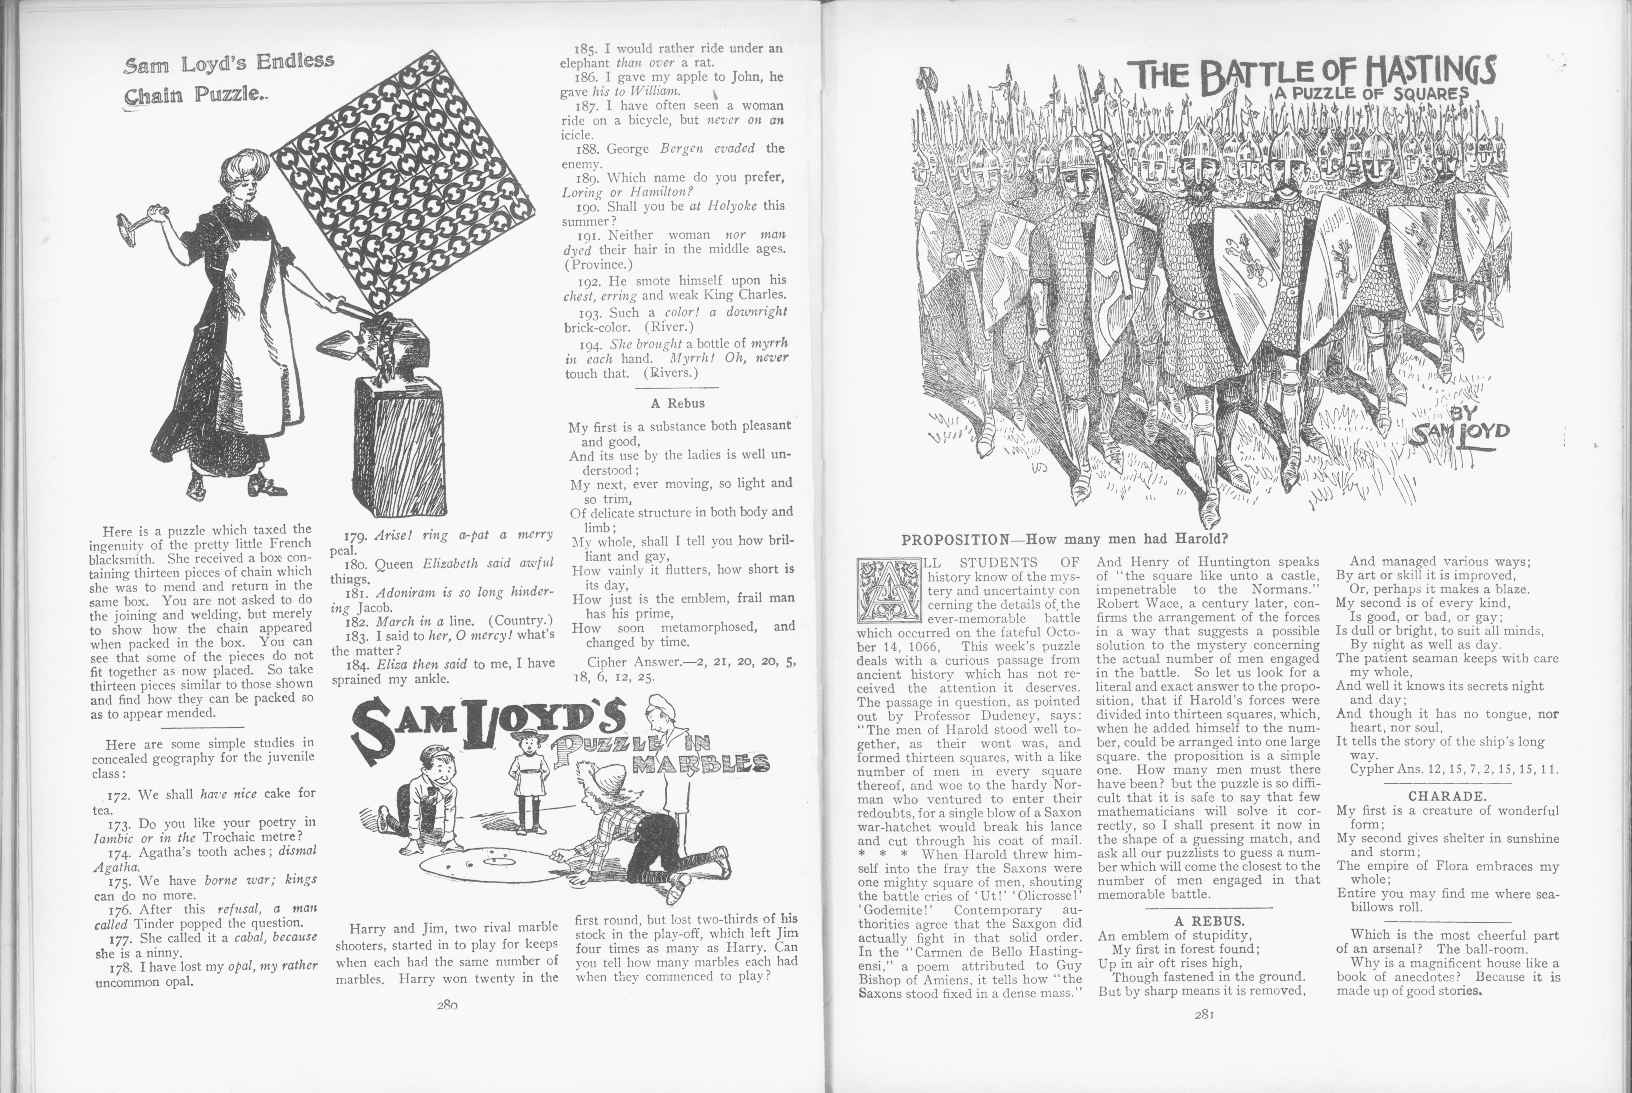 Sam Loyd - Cyclopedia of Puzzles - page 280-281